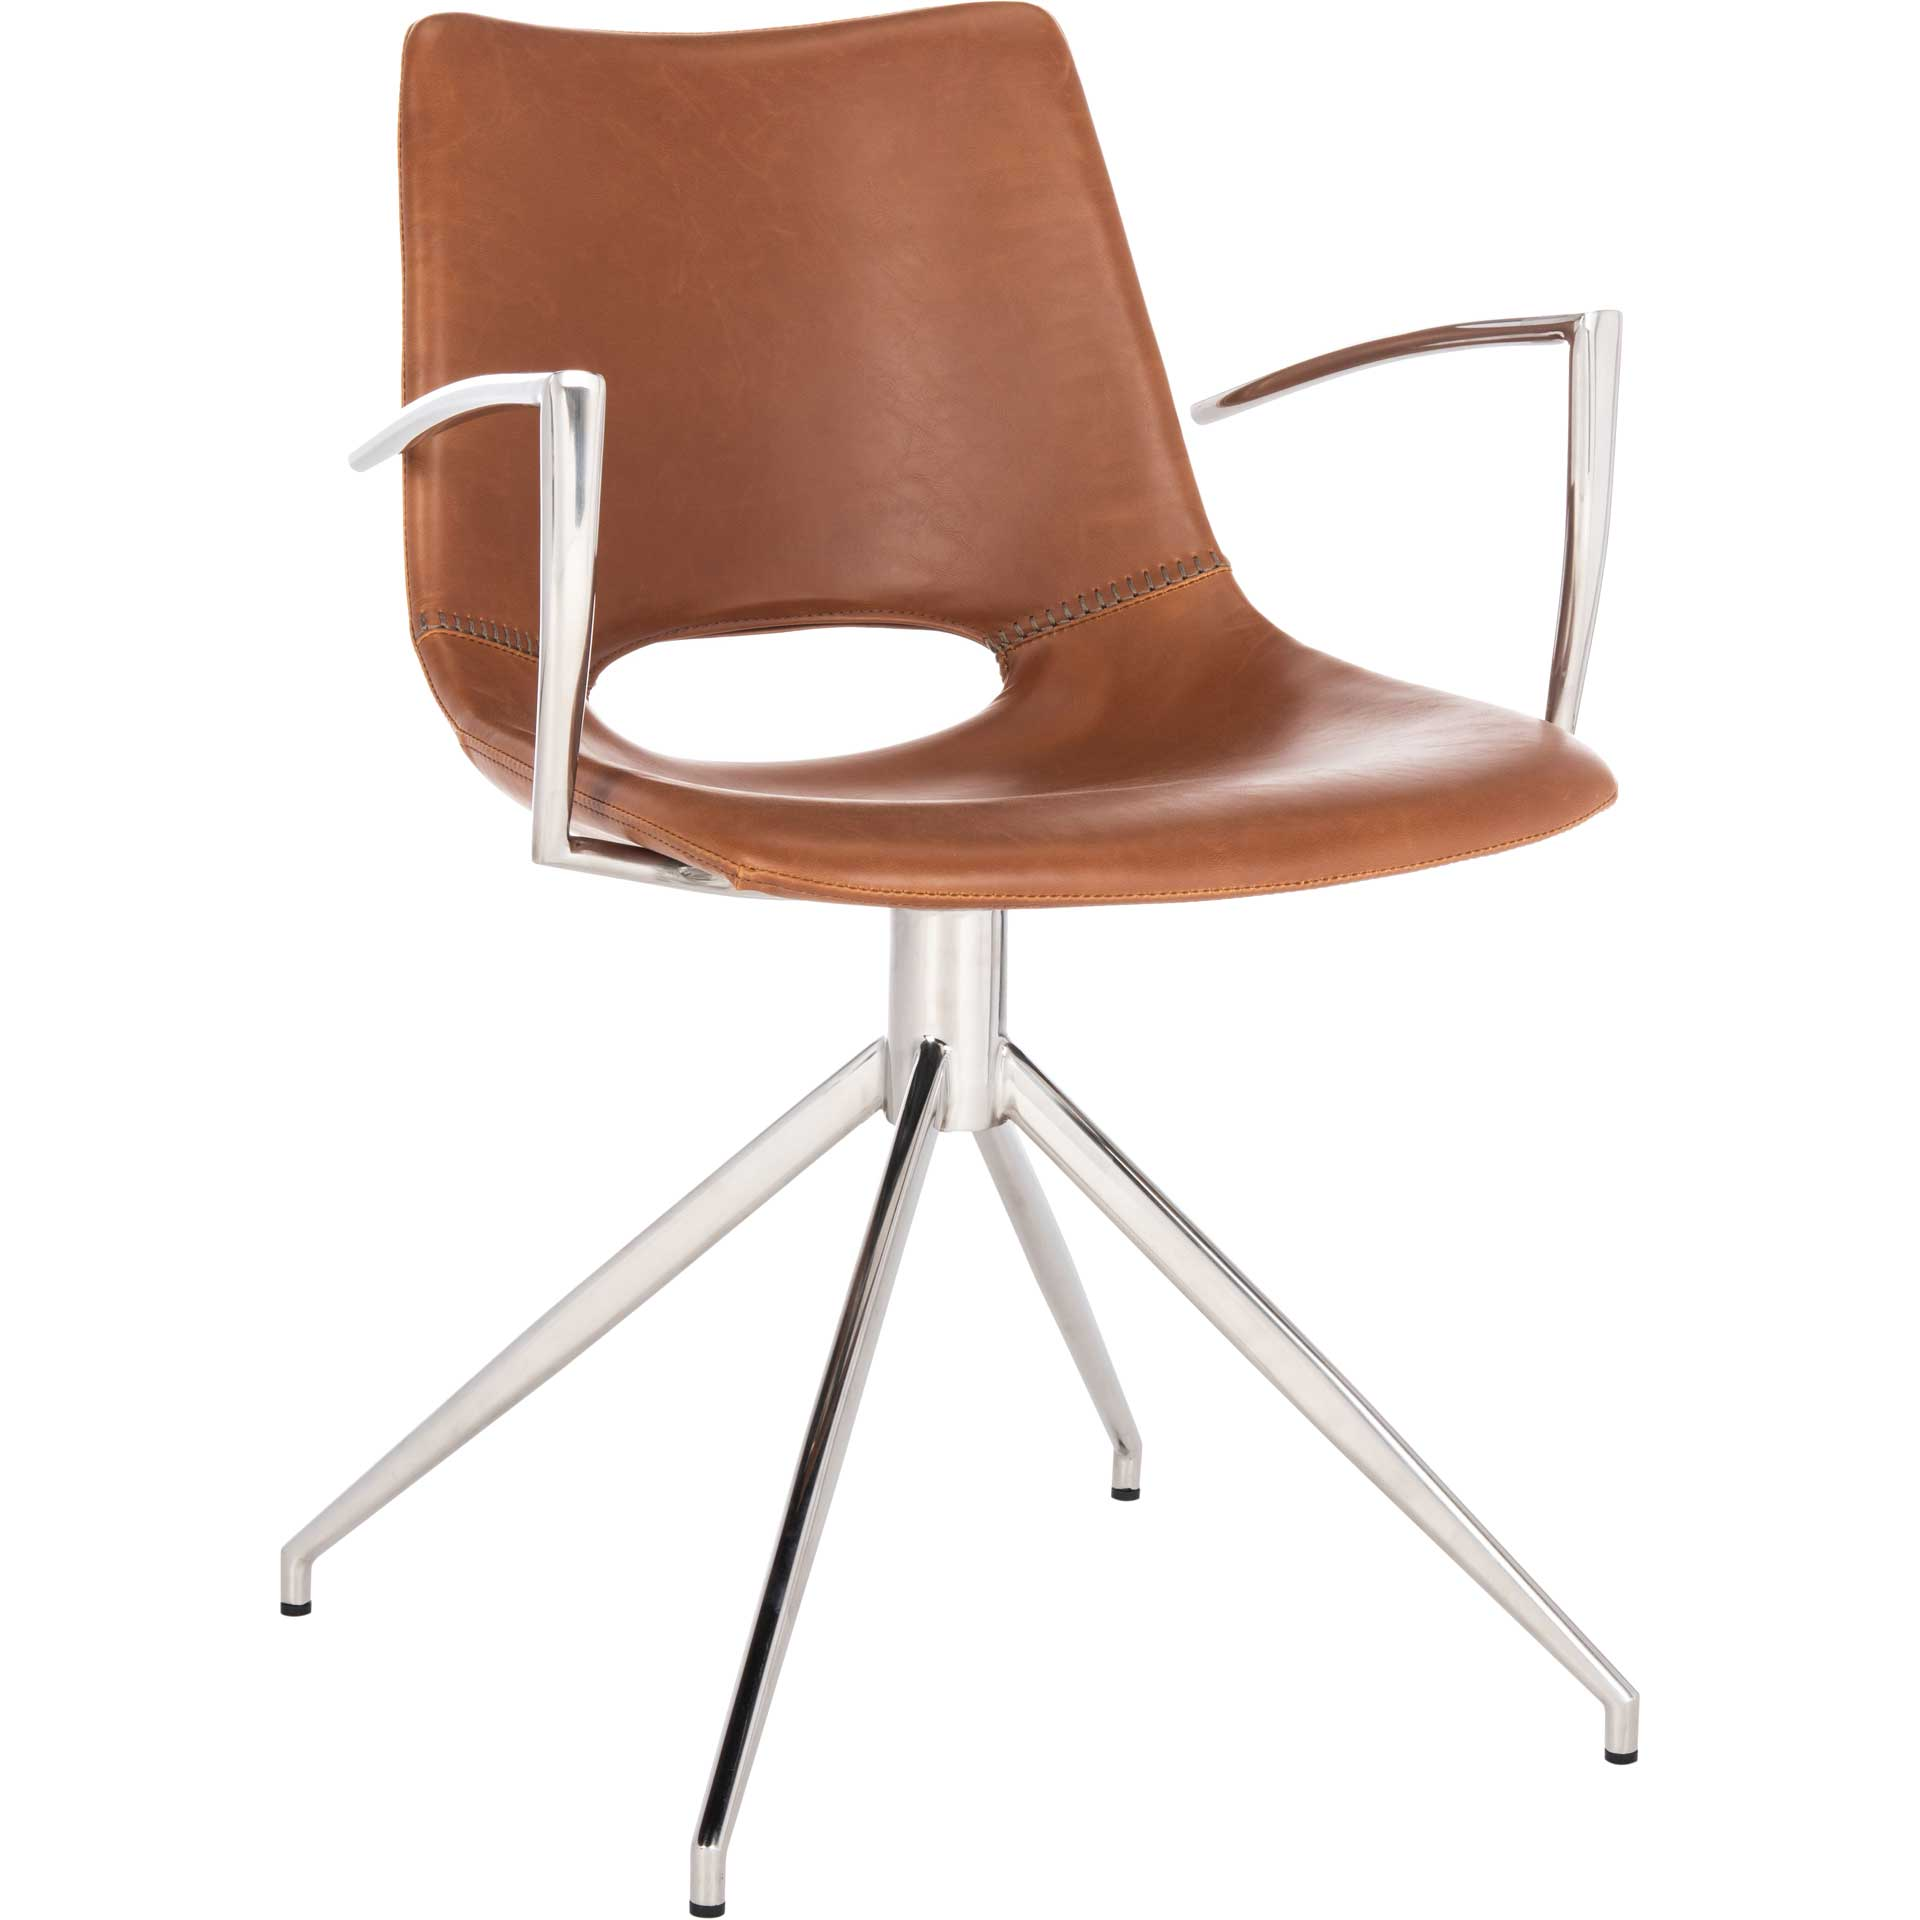 Dalton Leather Swivel Arm Chair Light Brown/Silver